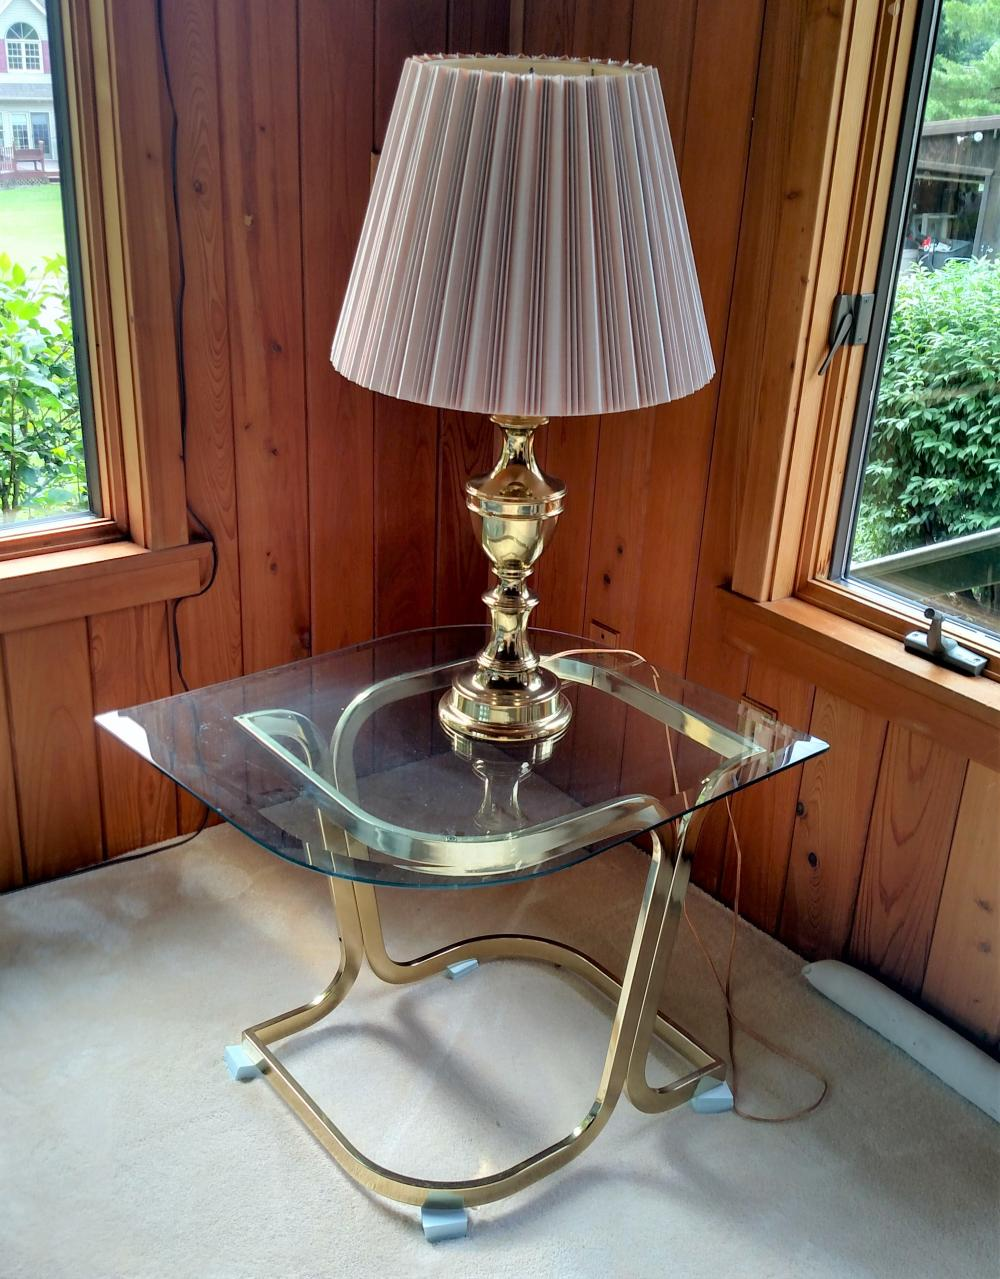 2 glasstop stands with lamps